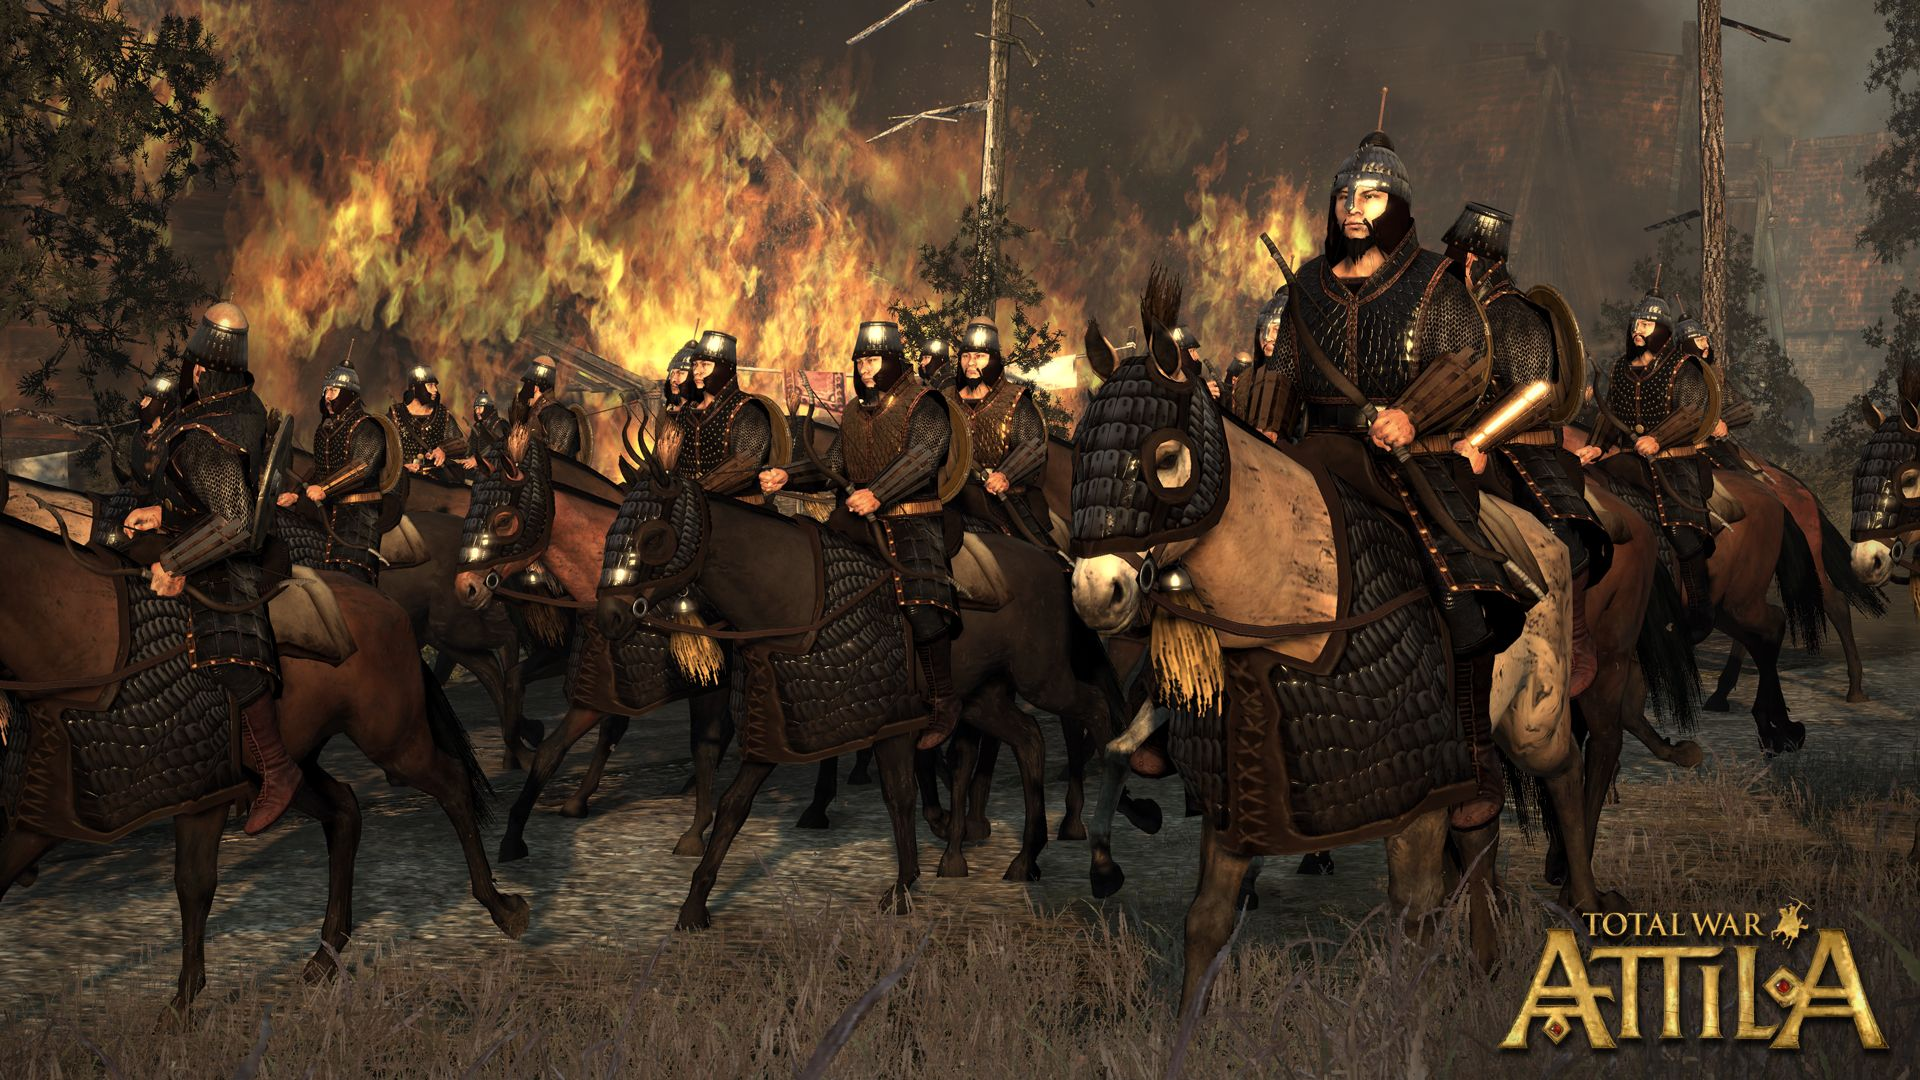 totalwar_atilla_full